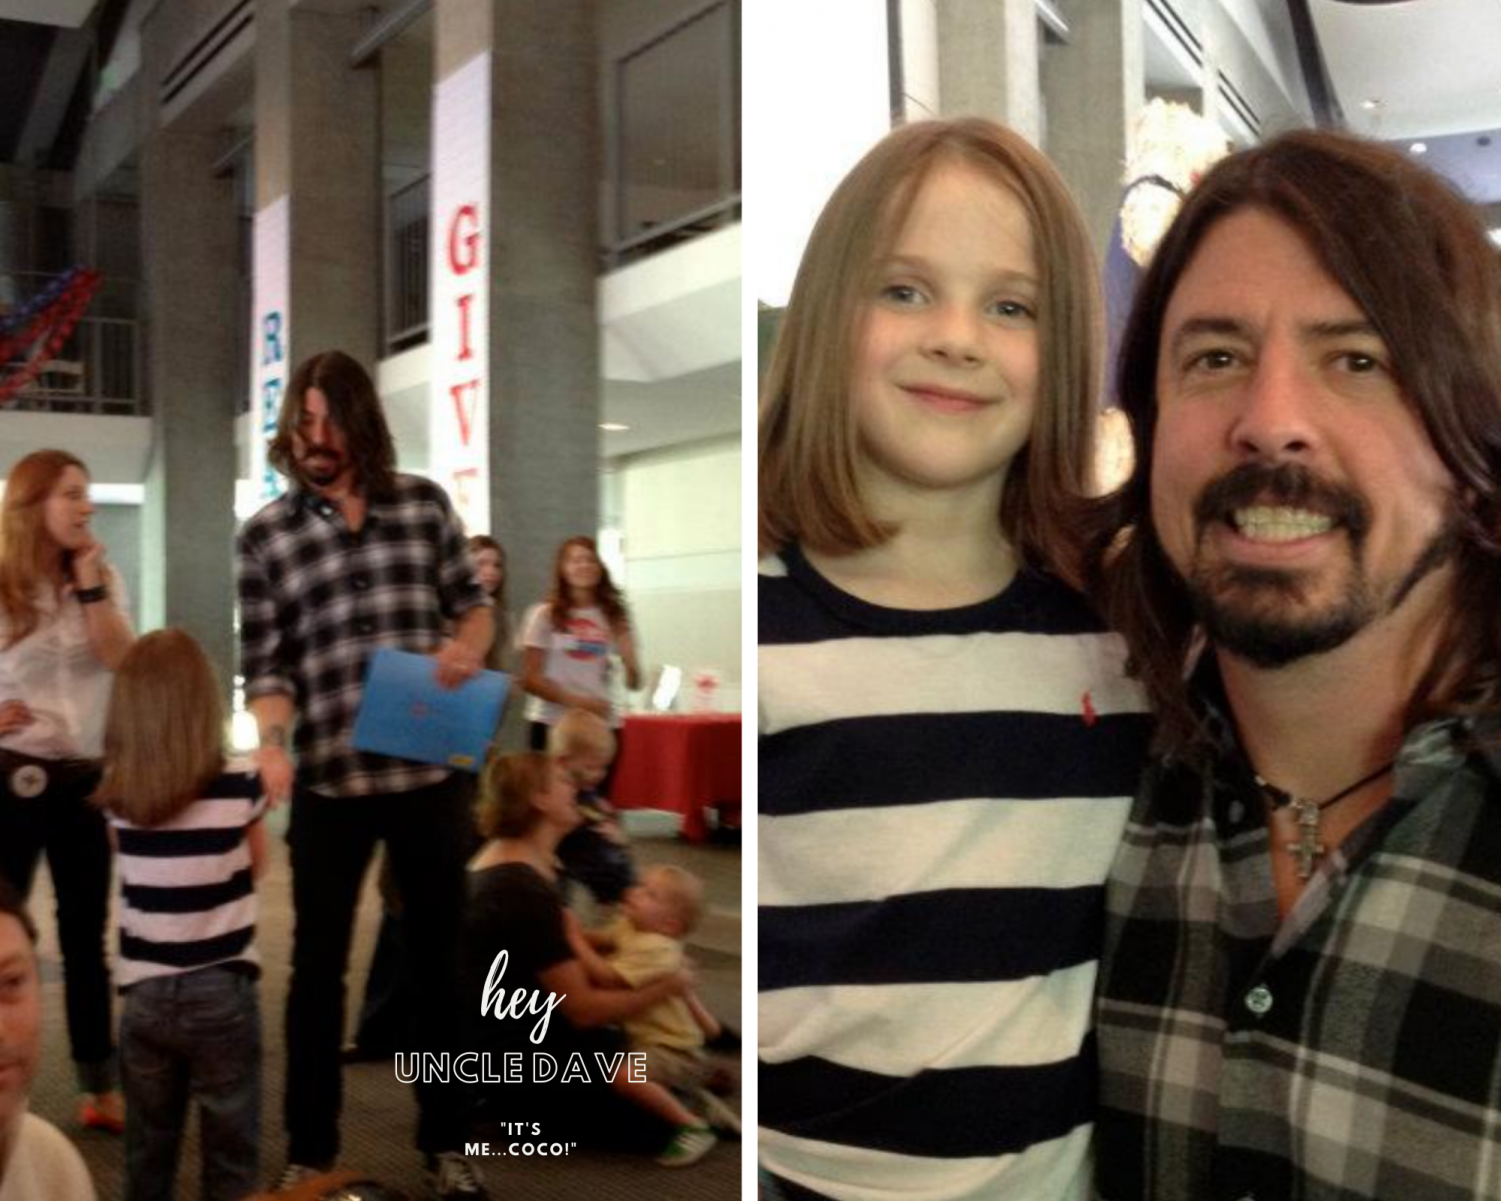 Foo Fighters Dave Grohl and Coco Standley